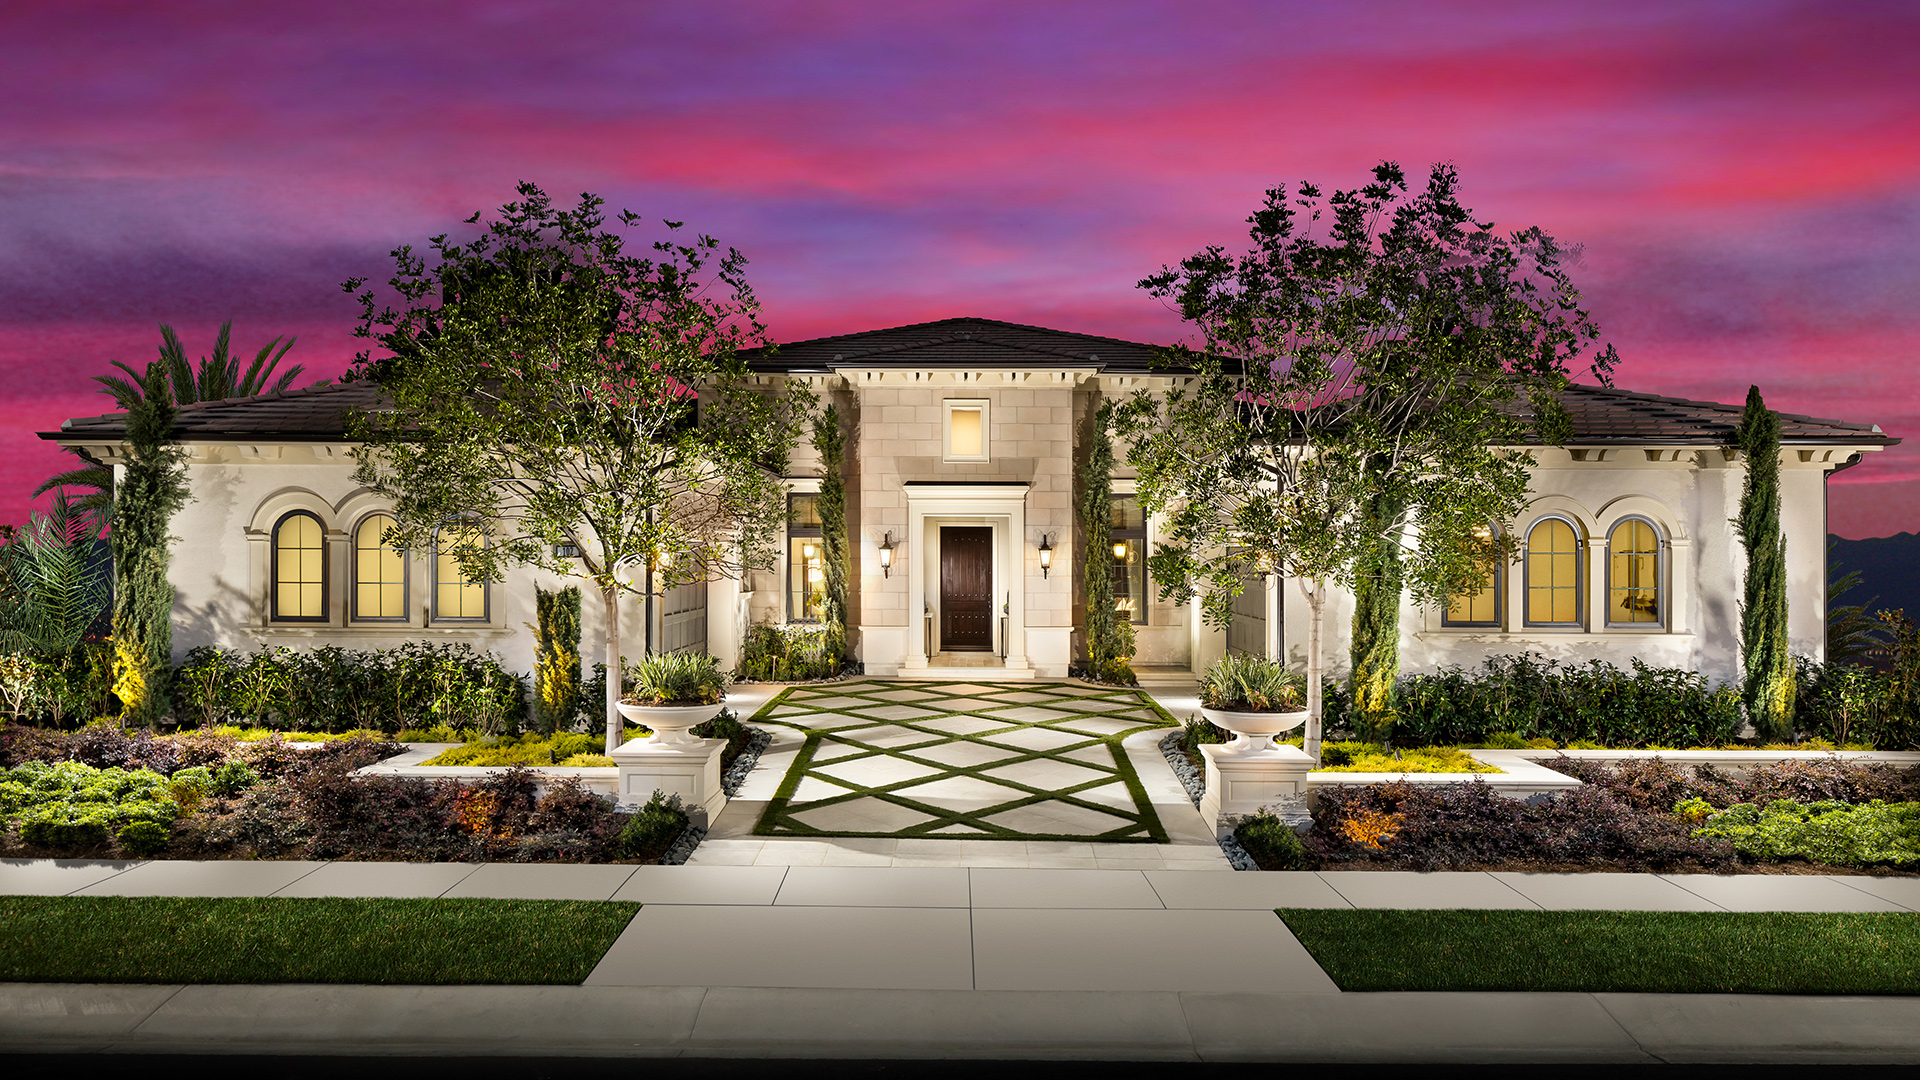 Estancia at Yorba Linda offers three single-story home designs to choose from